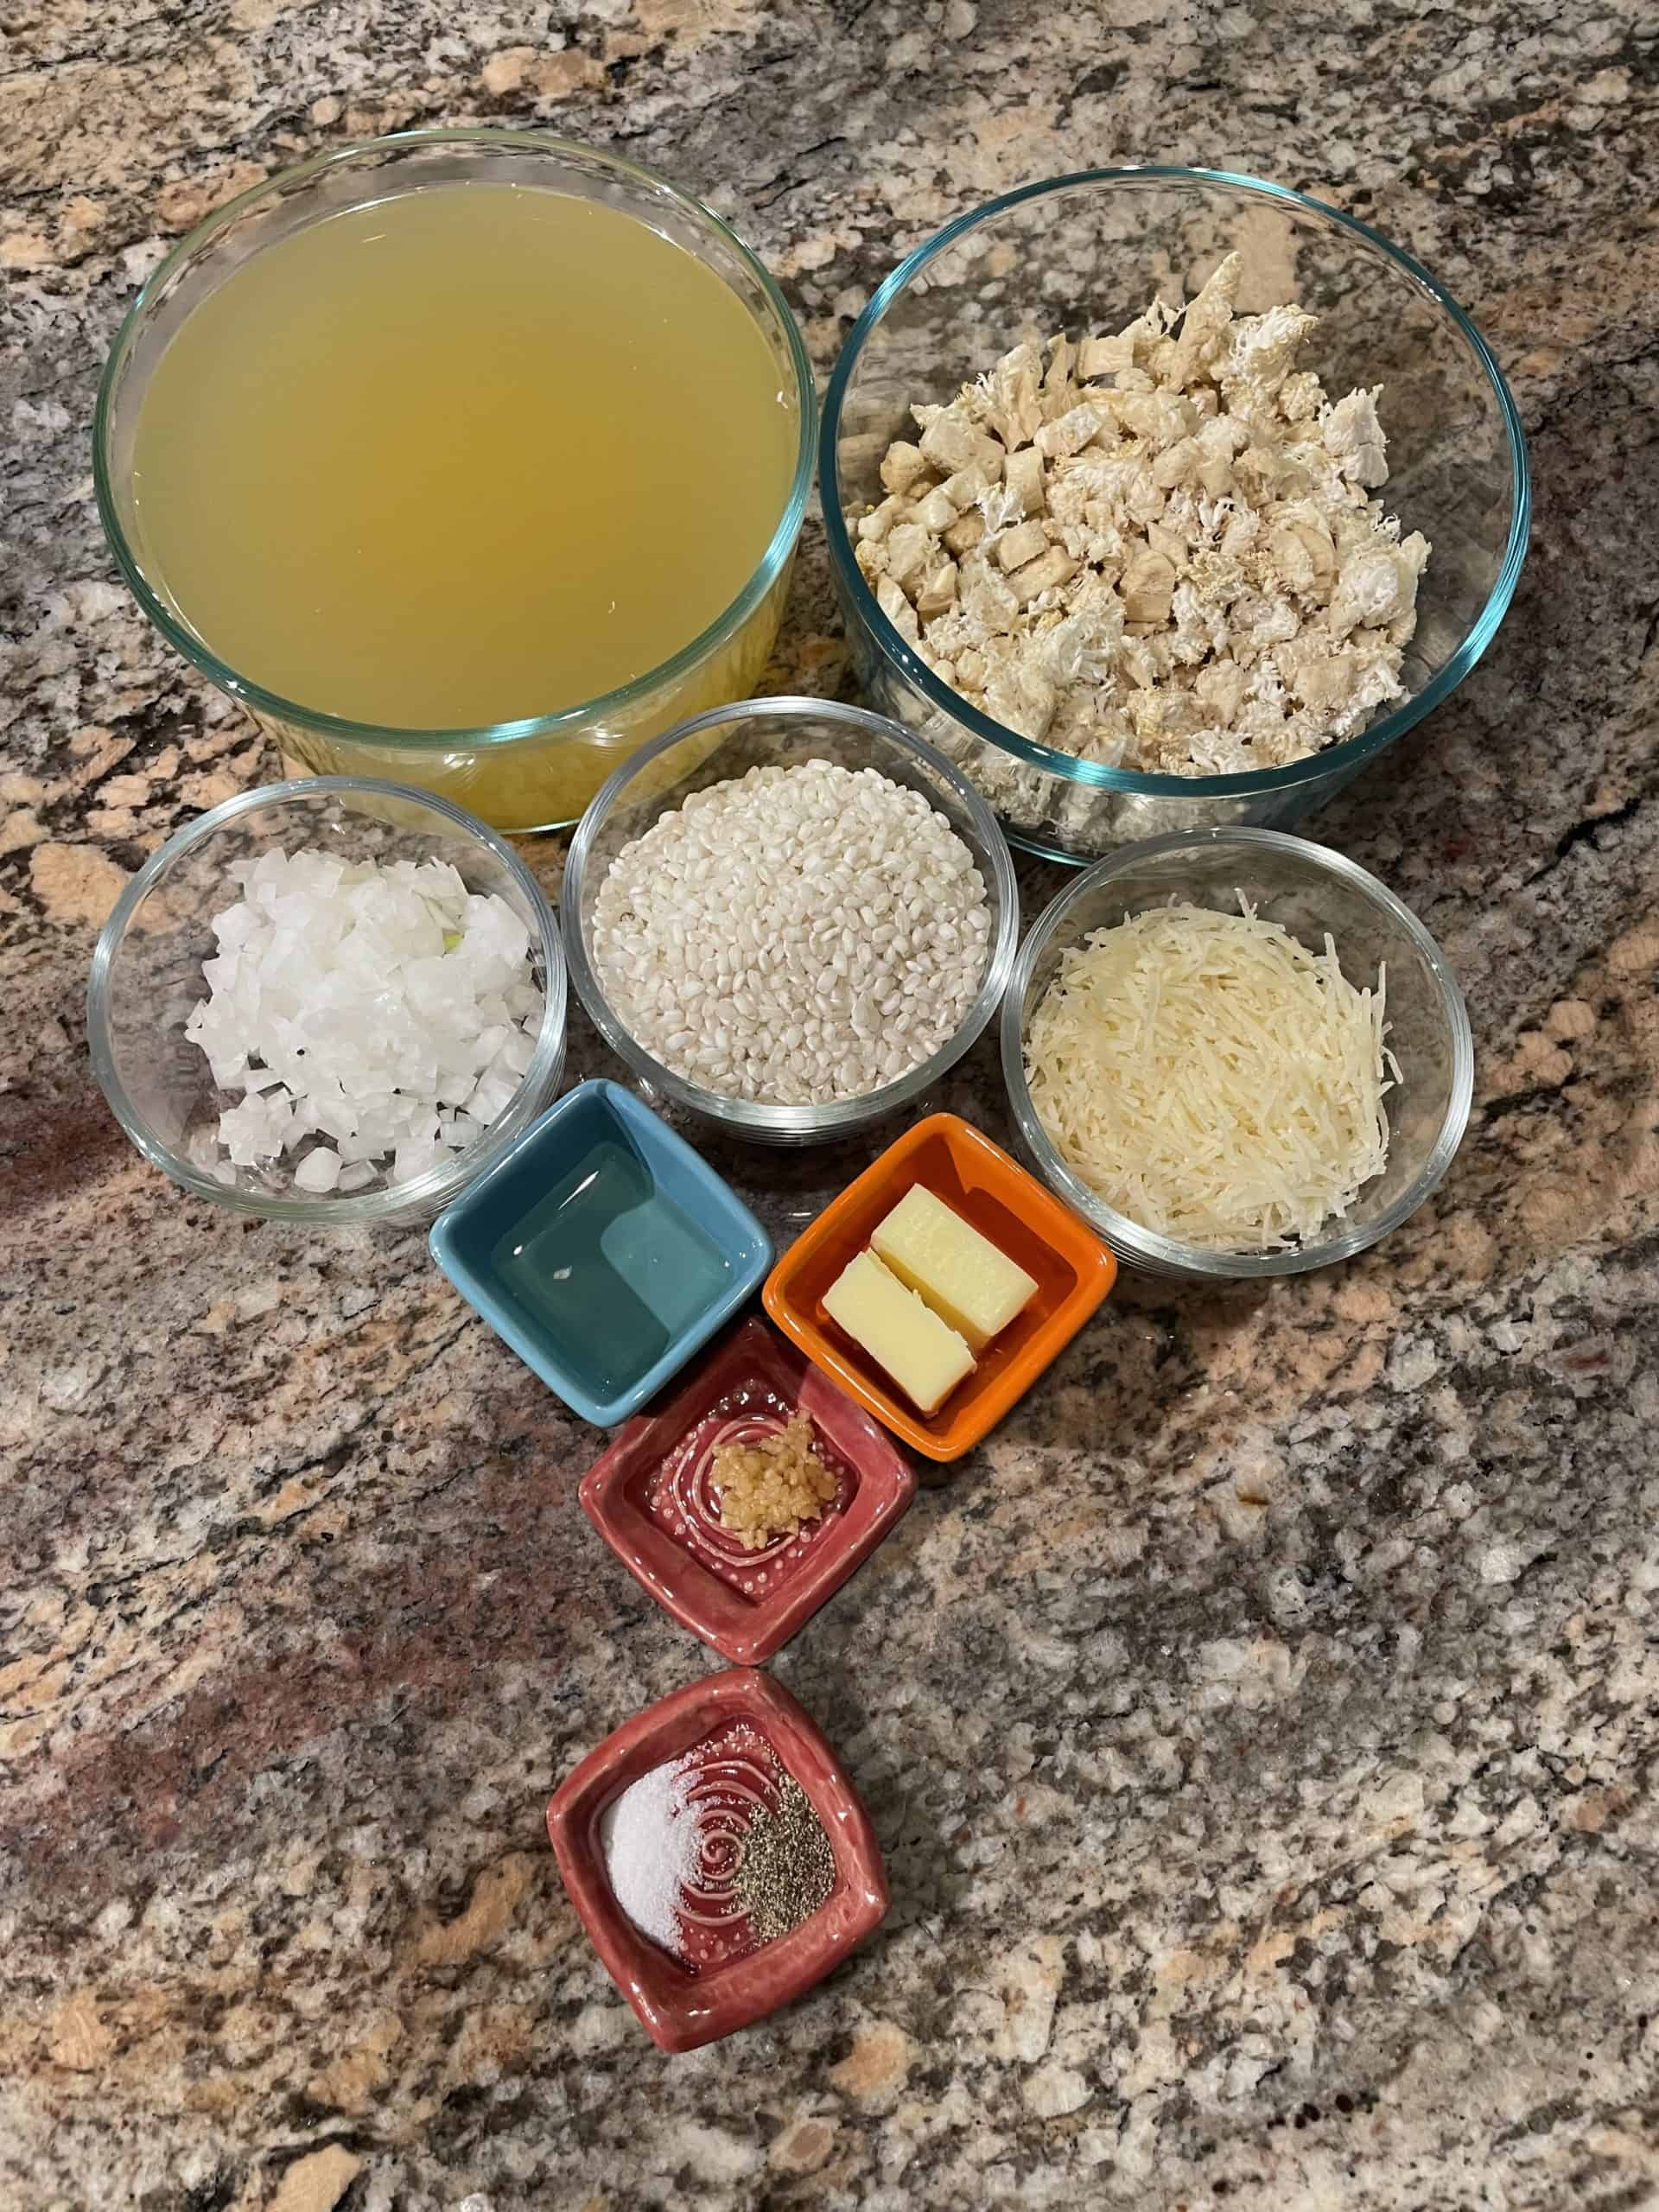 Risotto Ingredients - rice, broth, diced onion & mushrooms, minced garlic, butter, oil, seasonings and parmesan.